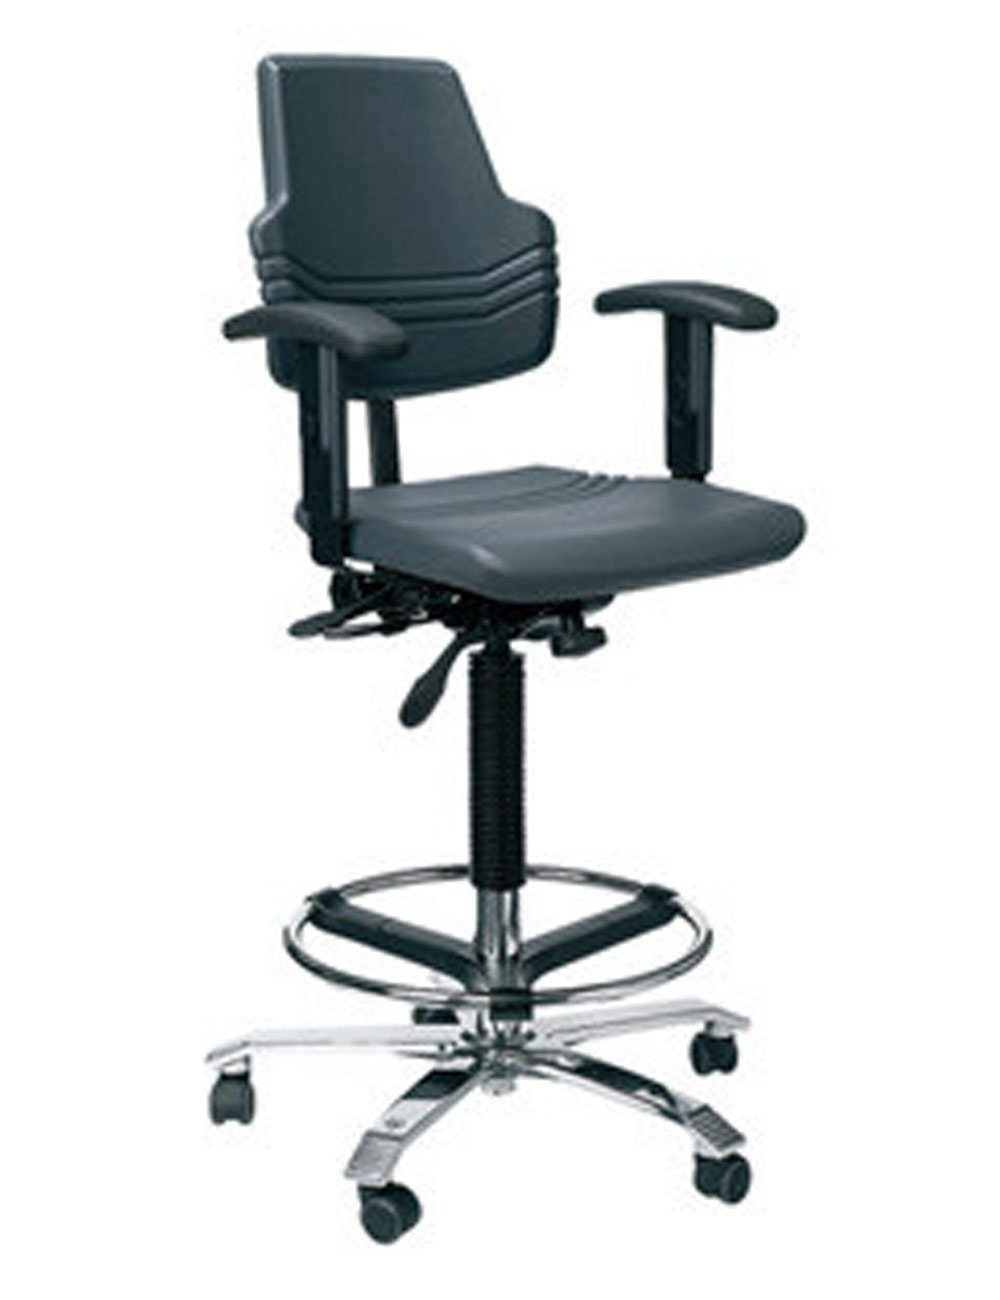 Industrial Ergonomic Arms : Score industrial chair online ergonomics